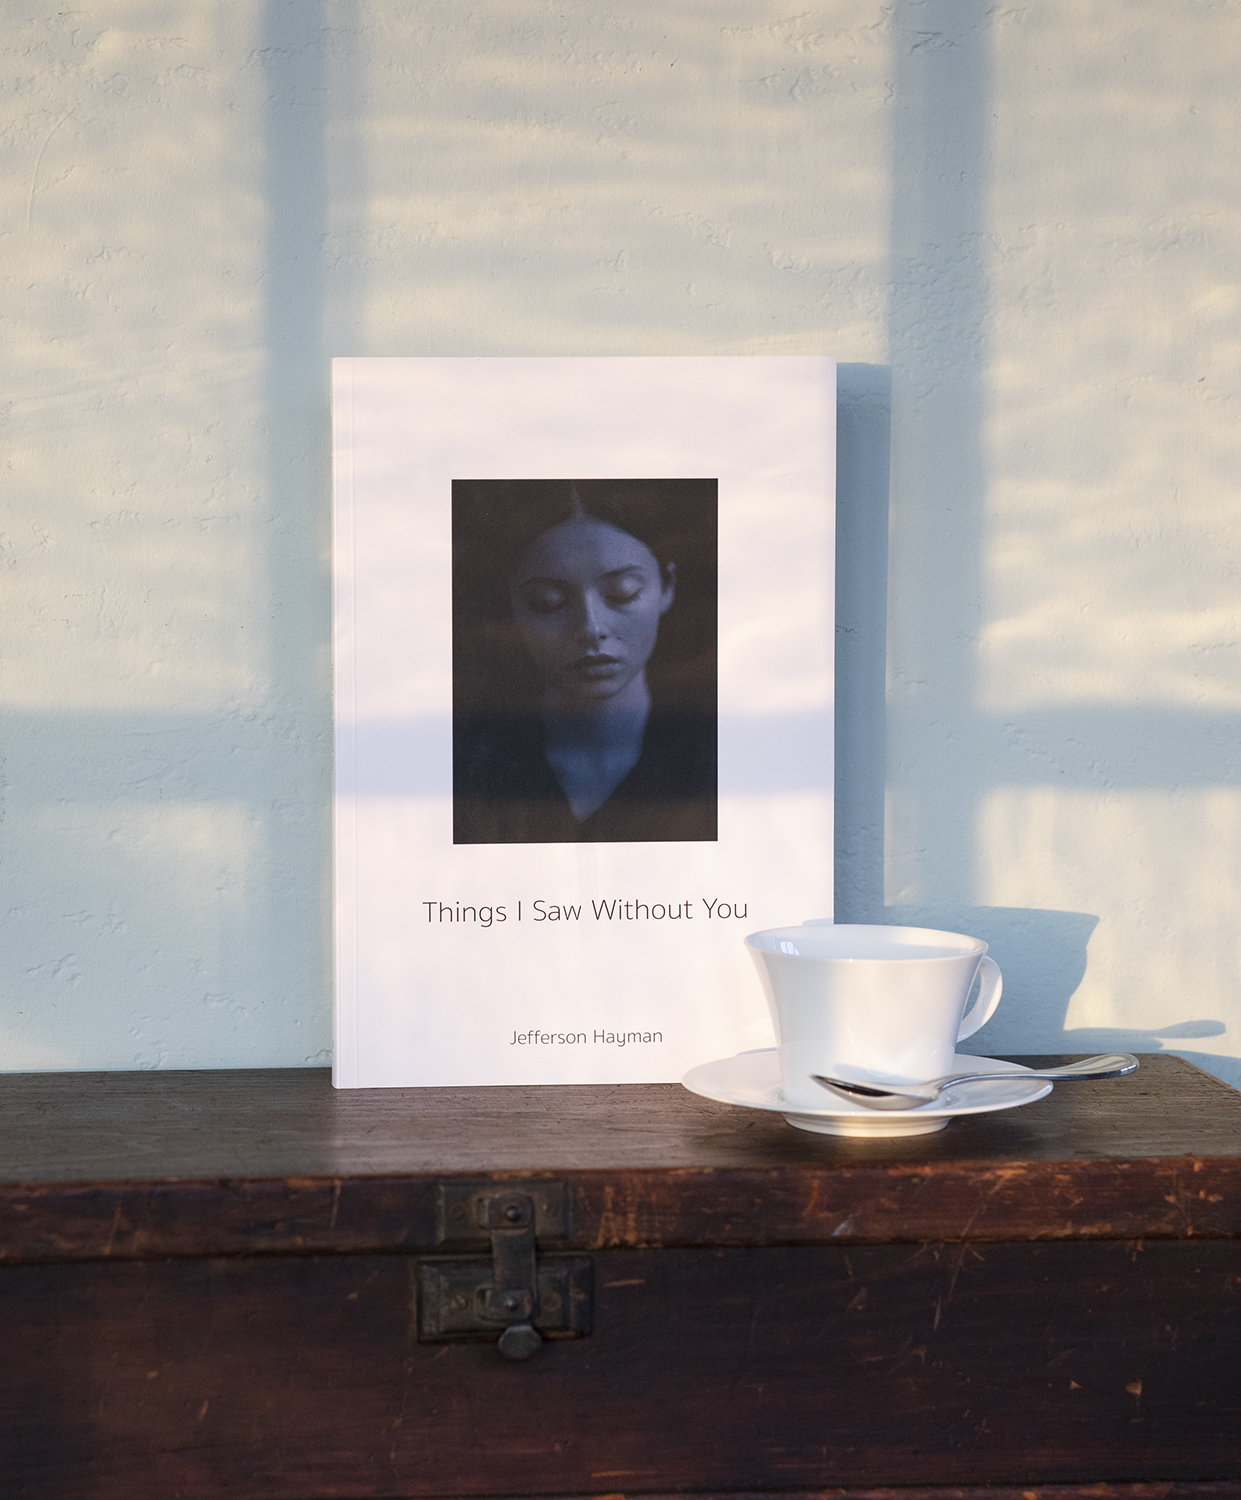 Things I Saw Without You by Jefferson Hayman Self-published, 2018 Softcover 108pp., $60